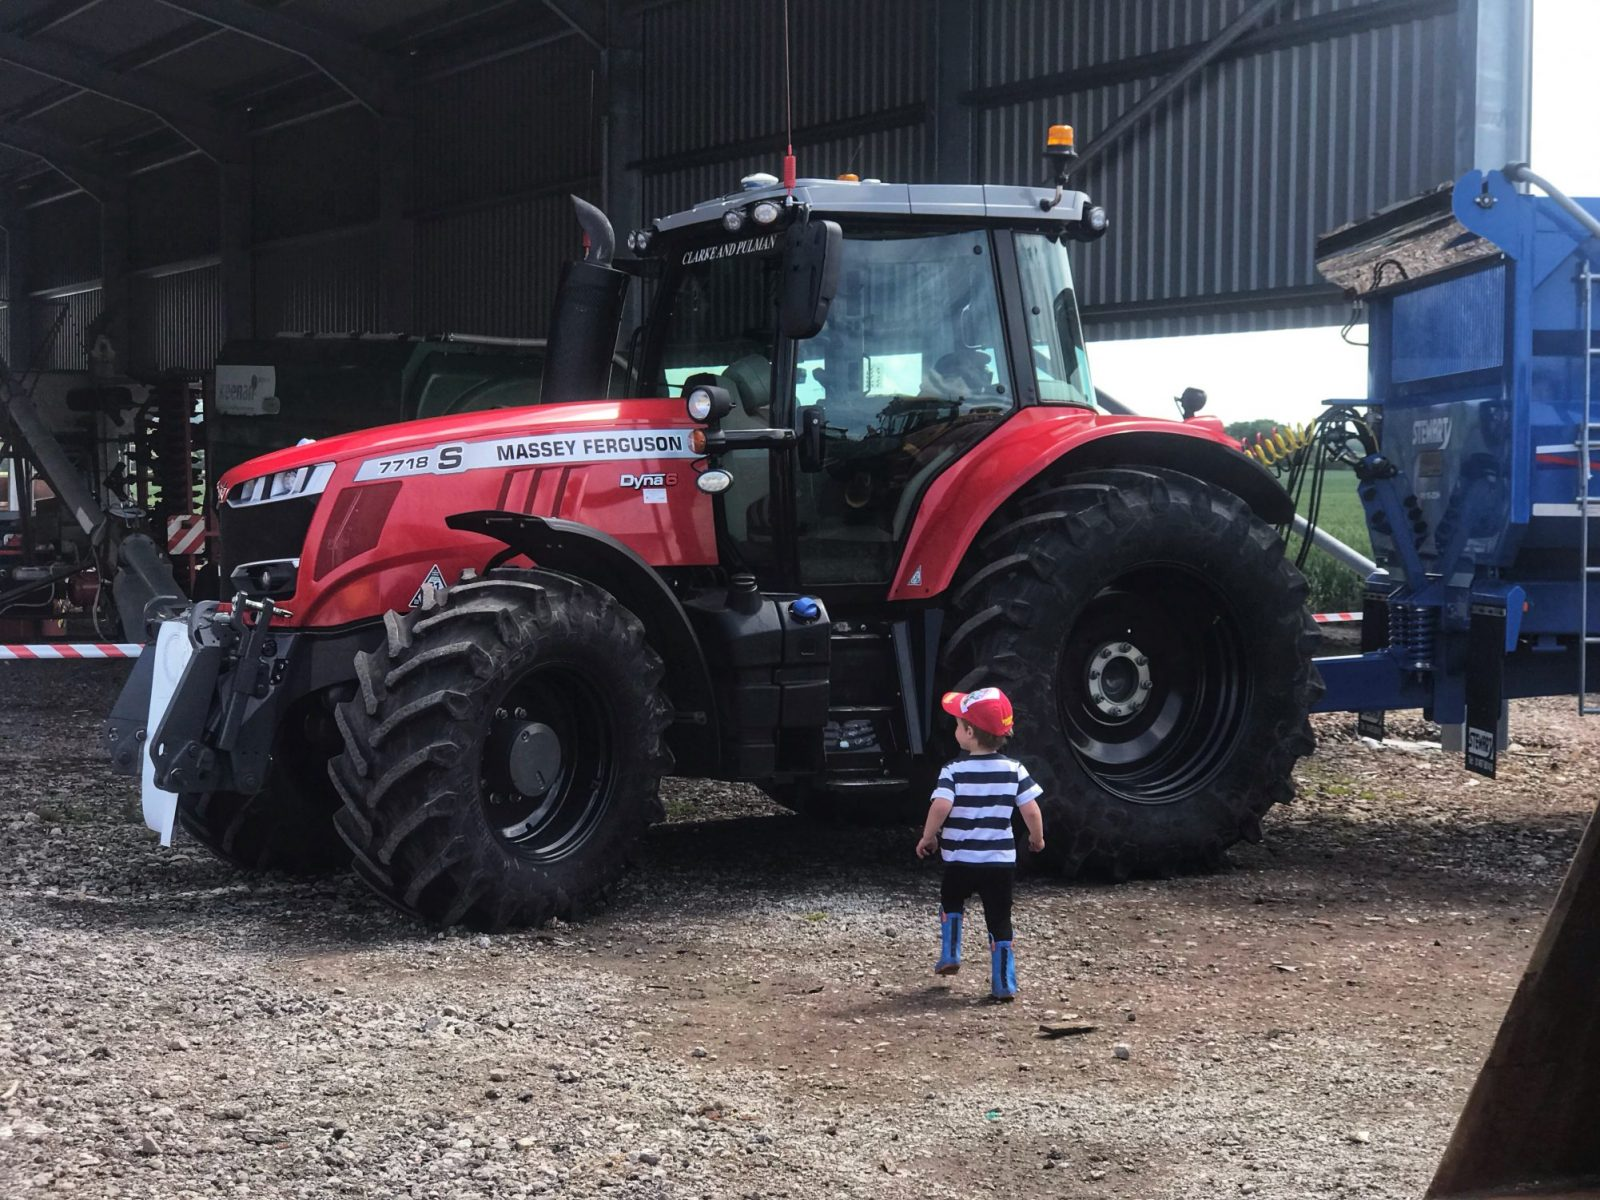 Dexter looking at a red tractor on taylor's Farm on leaf Open farm Sunday